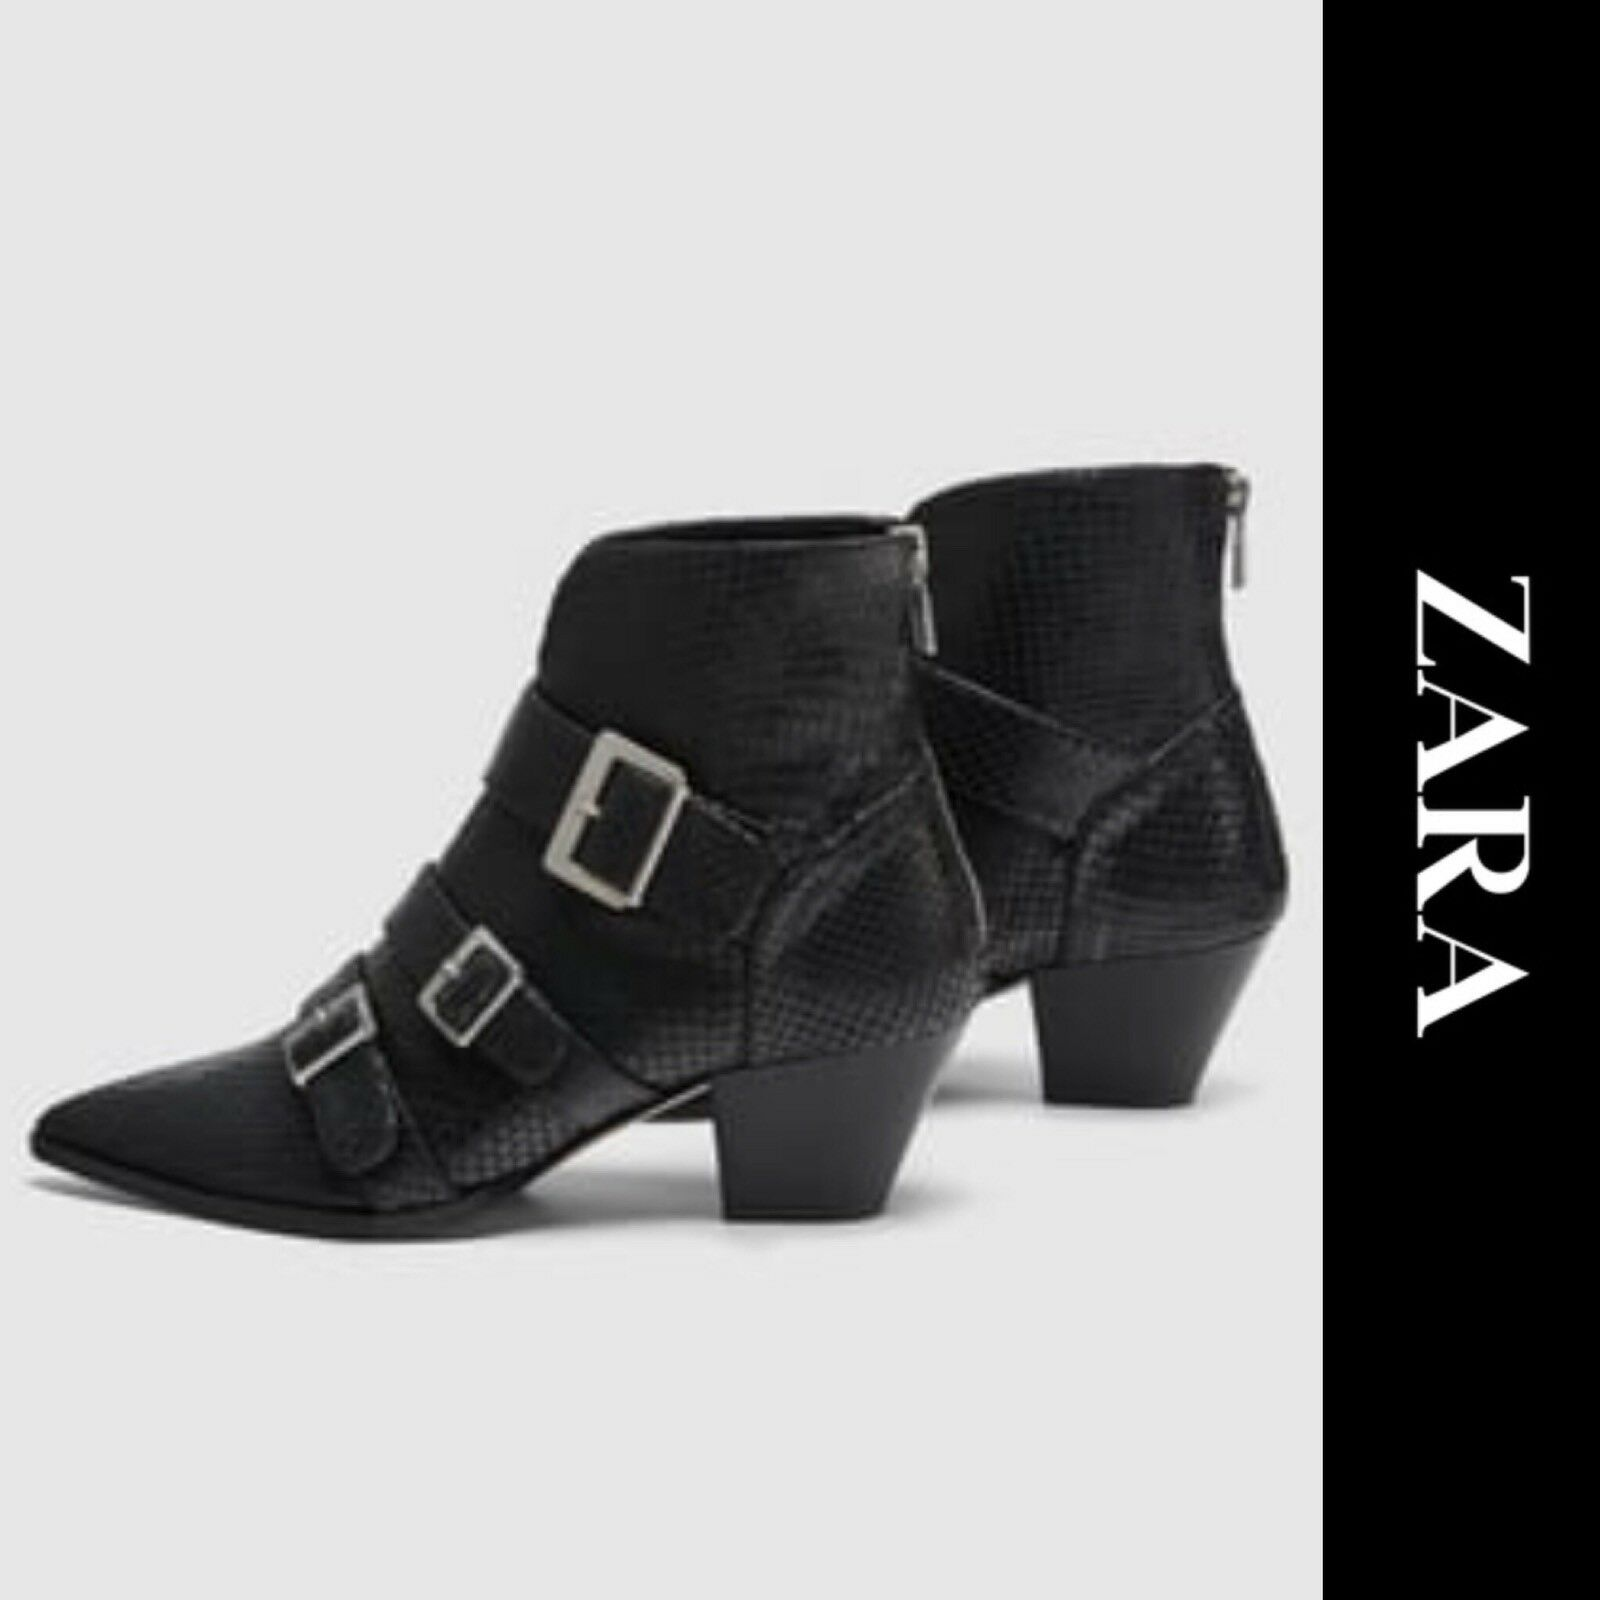 Zara SS18 Leather Ankle Boots with Straps 1120/301 Size 36 US 6